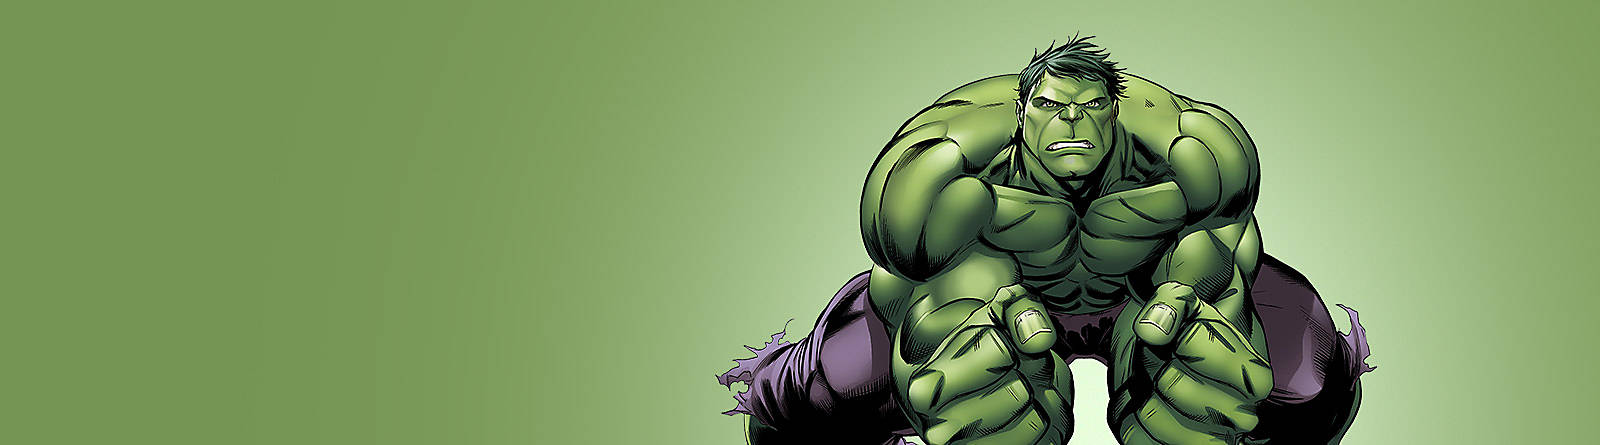 Hulk Discover the exciting world of Marvel with our Hulk merchandise, including figurines, clothing and toys